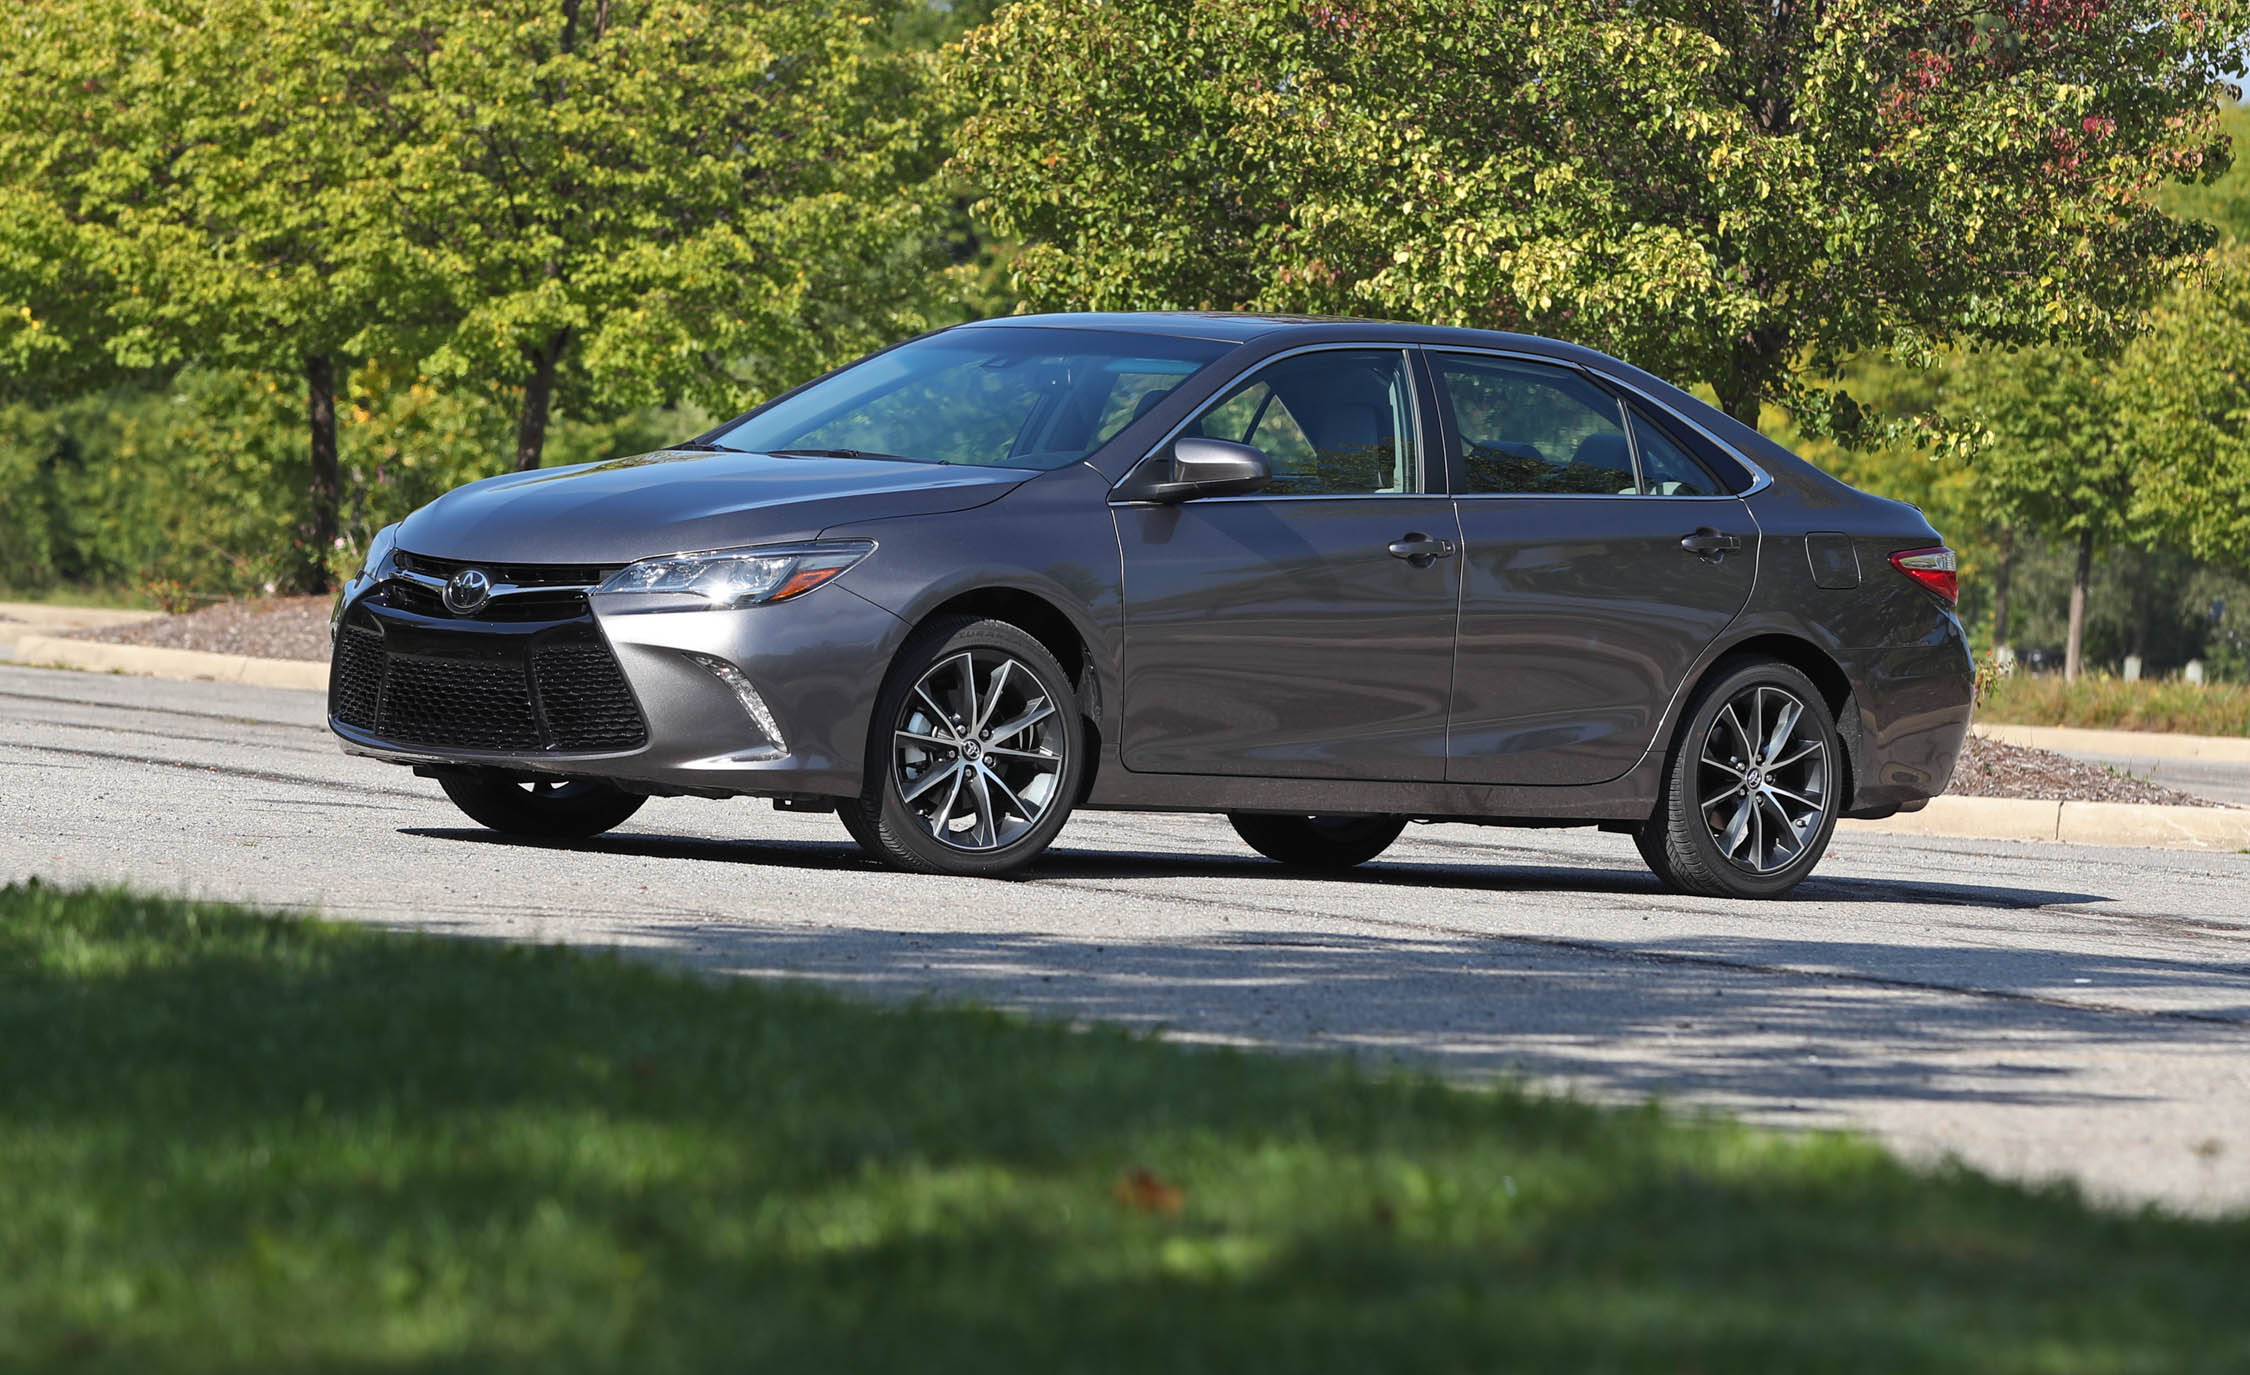 2017 Toyota Camry Exterior Side And Front (View 33 of 37)